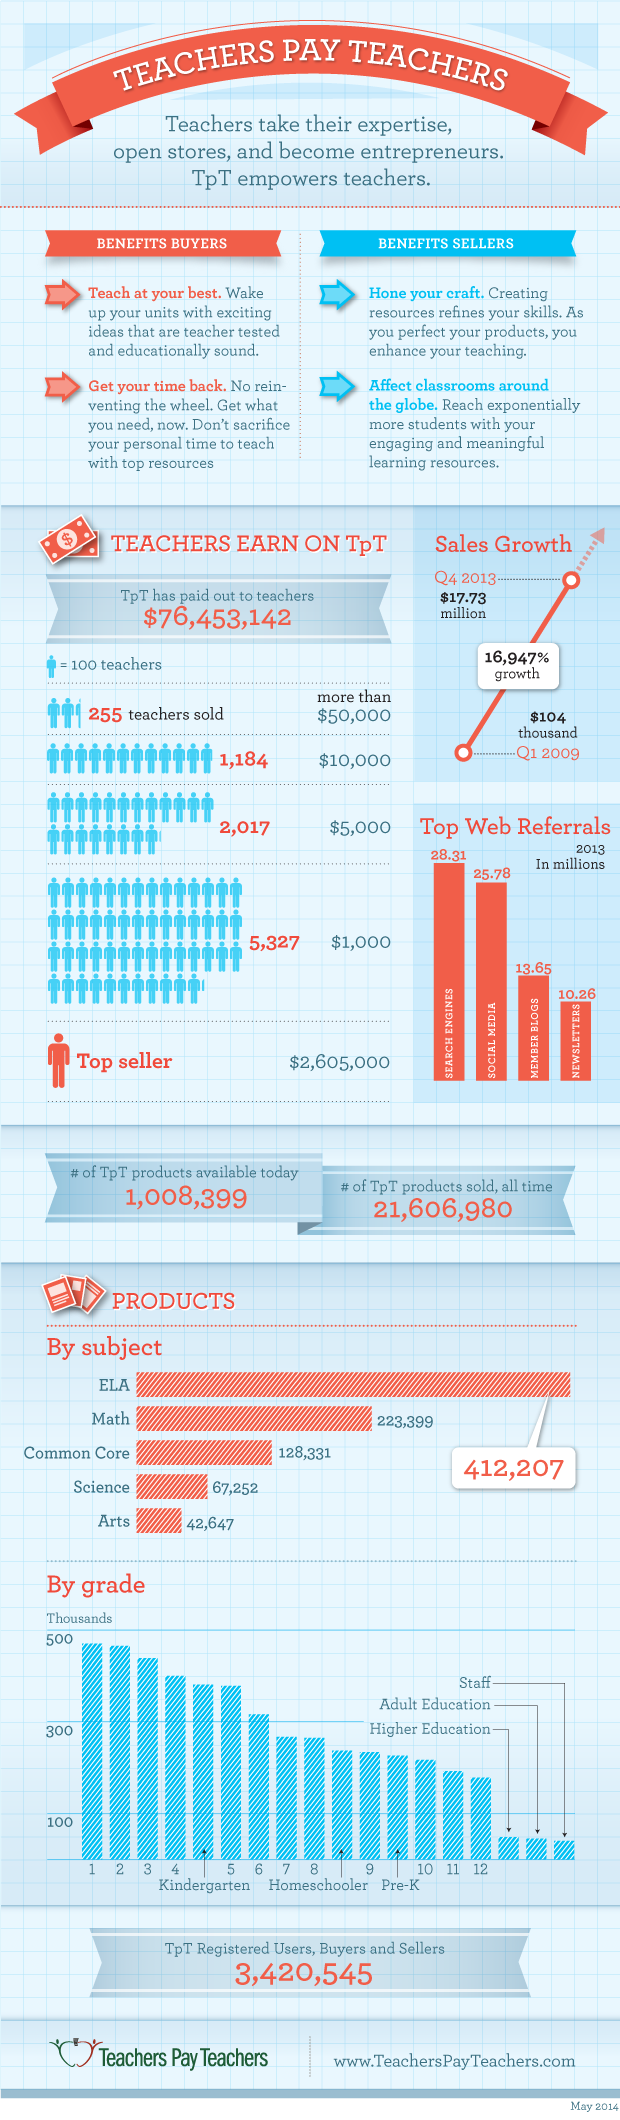 Teachers Pay Teachers by the numbers graphic